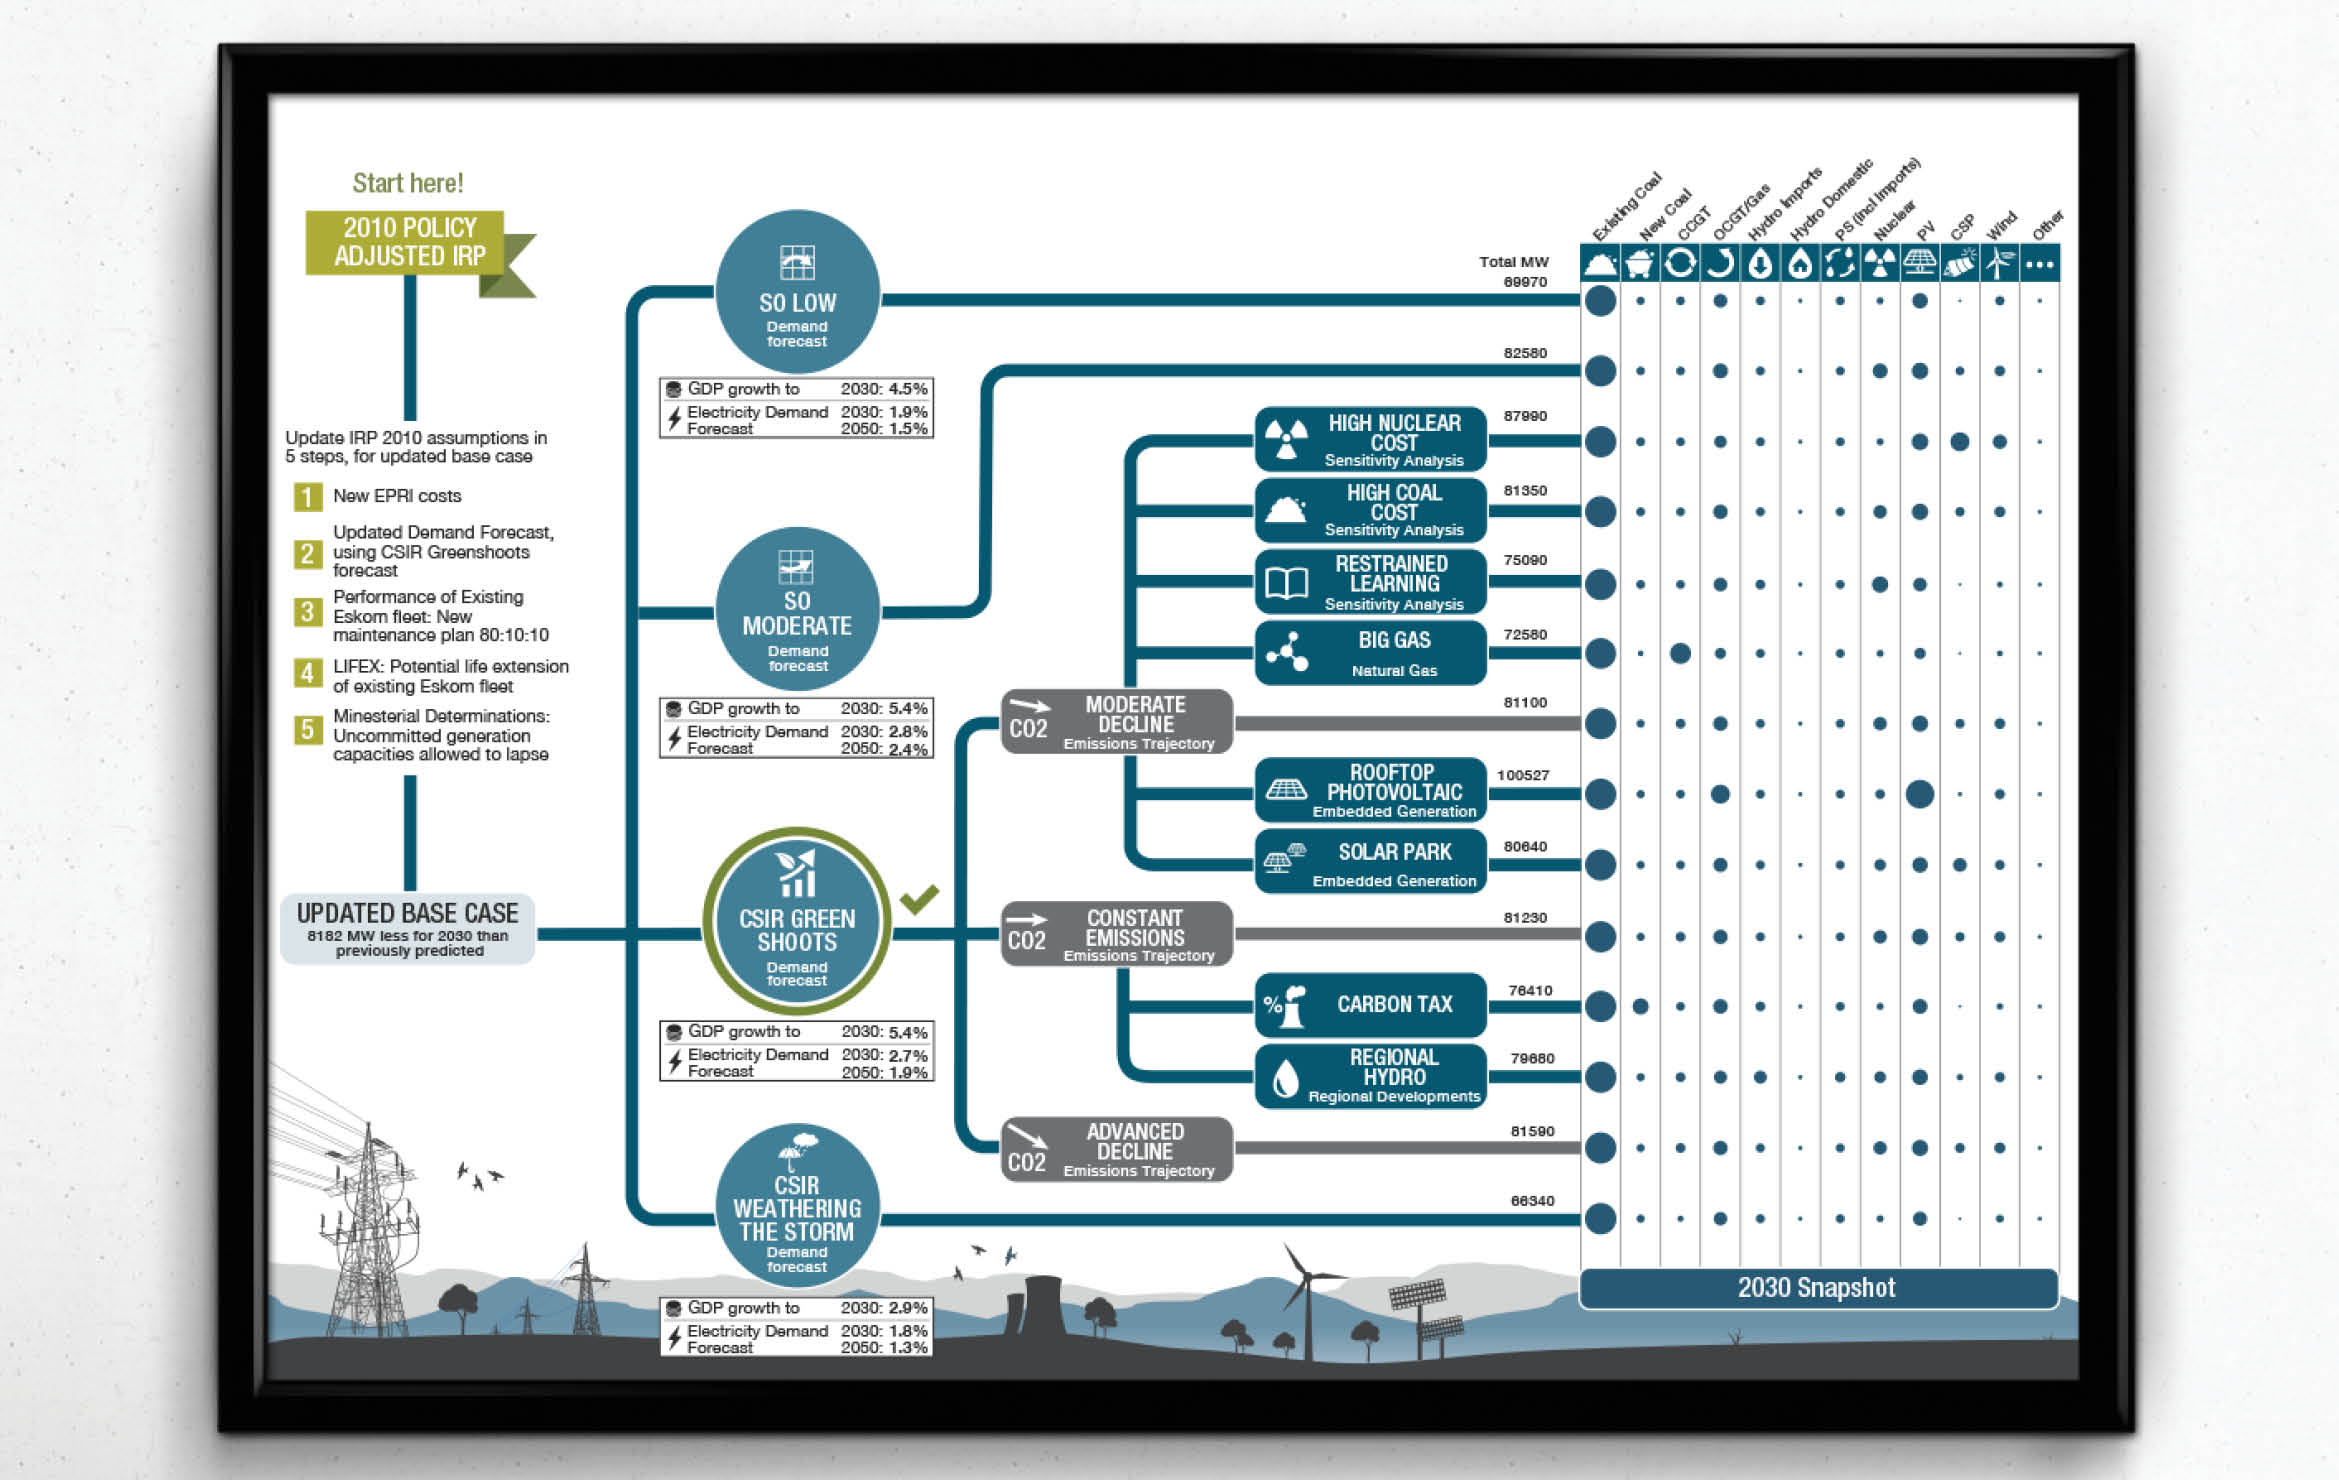 cafs irp project plan 2015 integrated resource plan project quarterly • hydro dam expansion project: -scale storage • pumped-hydro storage • compressed air energy storage.